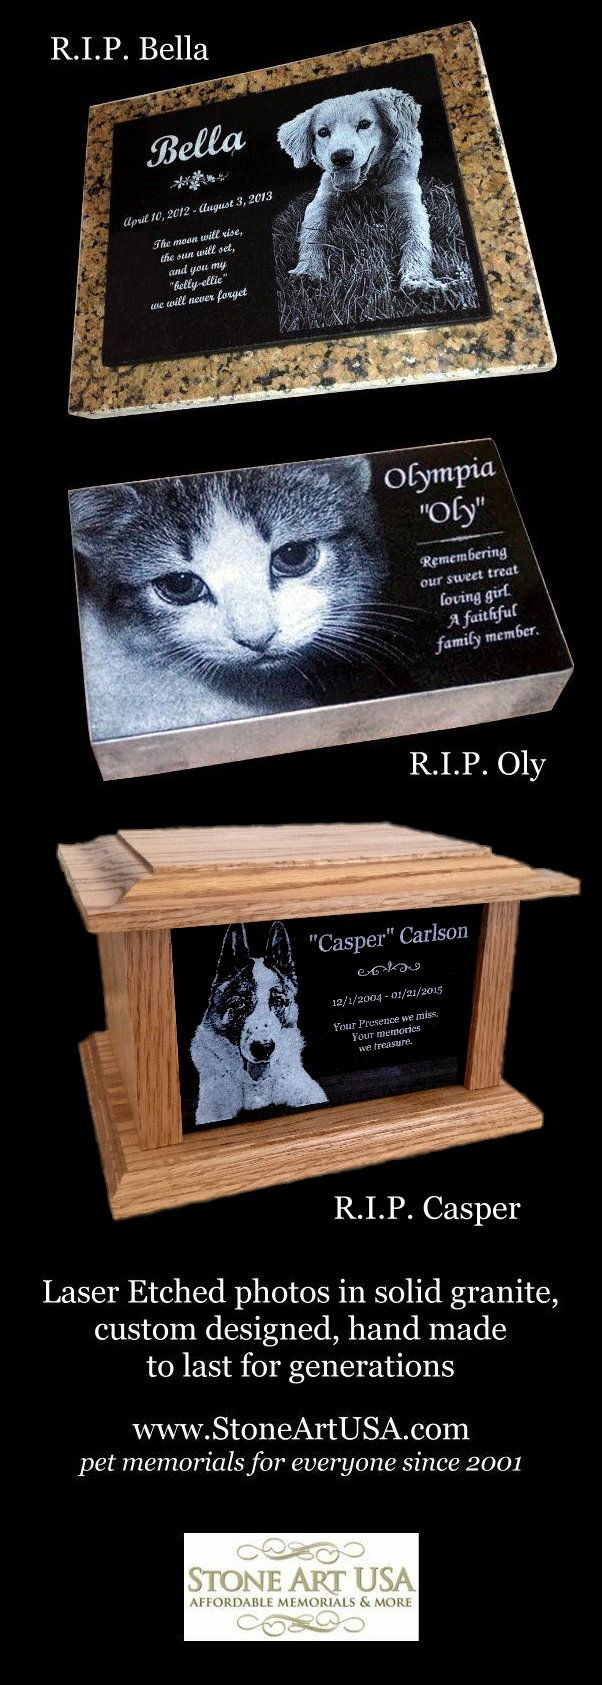 www.StoneArtUSA.com ~ I've been making custom memorials with granite since 2001. The granite is laser etched with your pet's photo and your words. Markers will stay beautiful for generations in the yard or cemetery. Memorial stones can be made for people too. Order on-line. Let me know if you have any questions, Eric @ StoneArtUSA